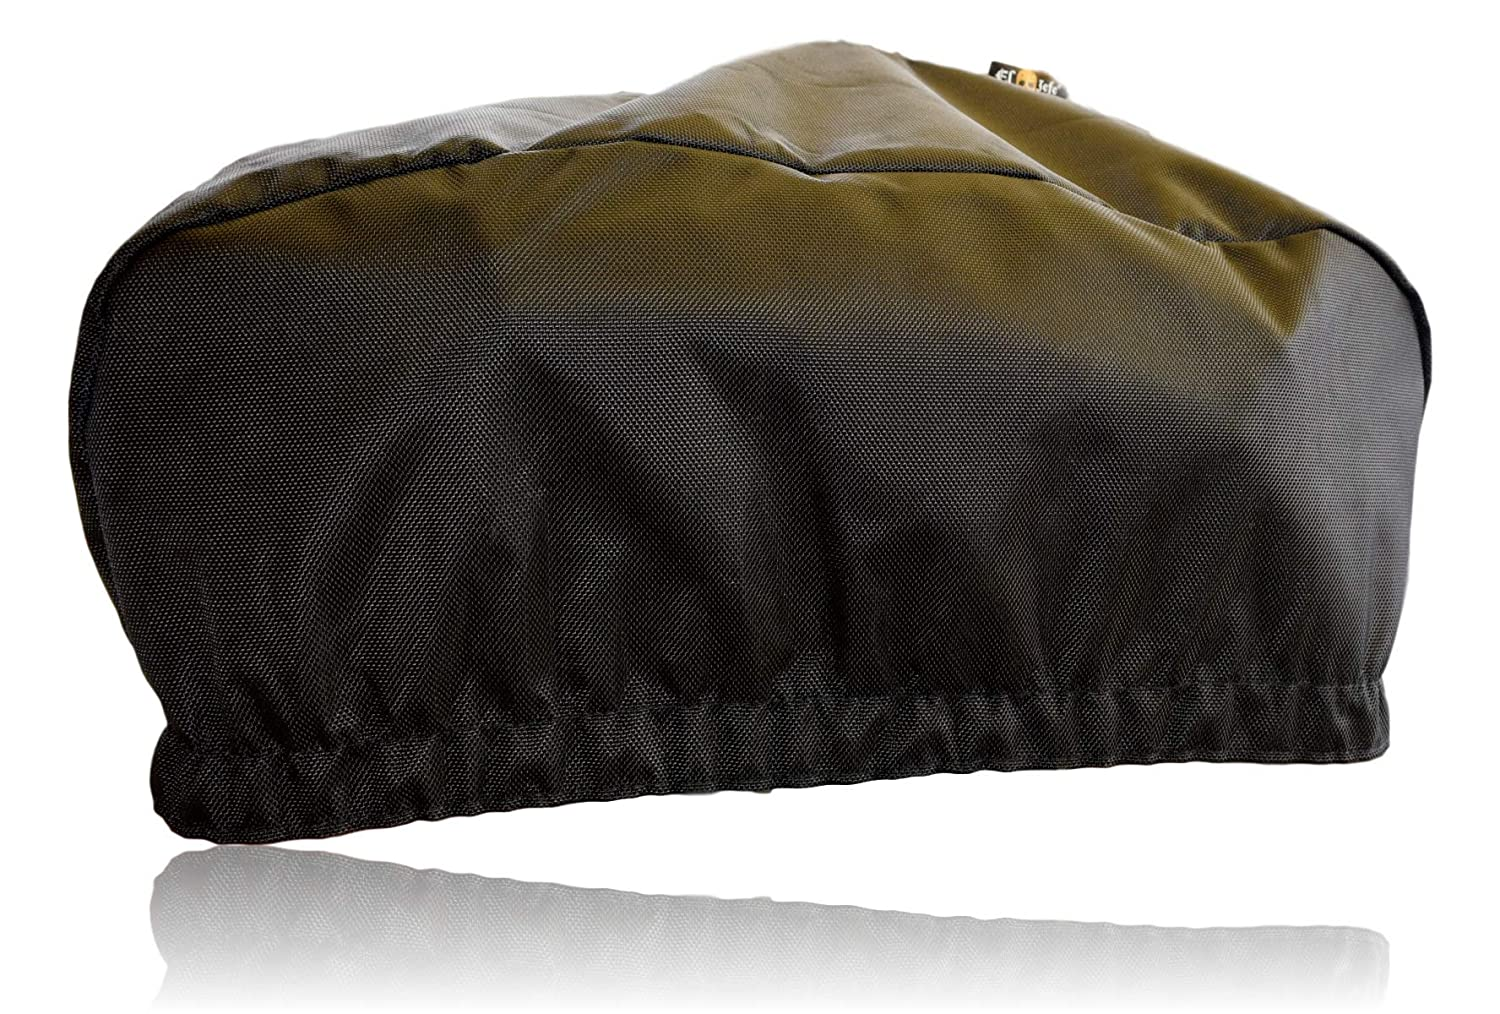 EL JEFE Heavy Duty Waterproof Winch Cover   Dust-Proof, UV & Mildew-Resistant Winch Protection Cover W/Sewn-in Elastic Band   Ideal for SUV Winches Up to 17500 Lbs   24' W x 10' H x 7' D